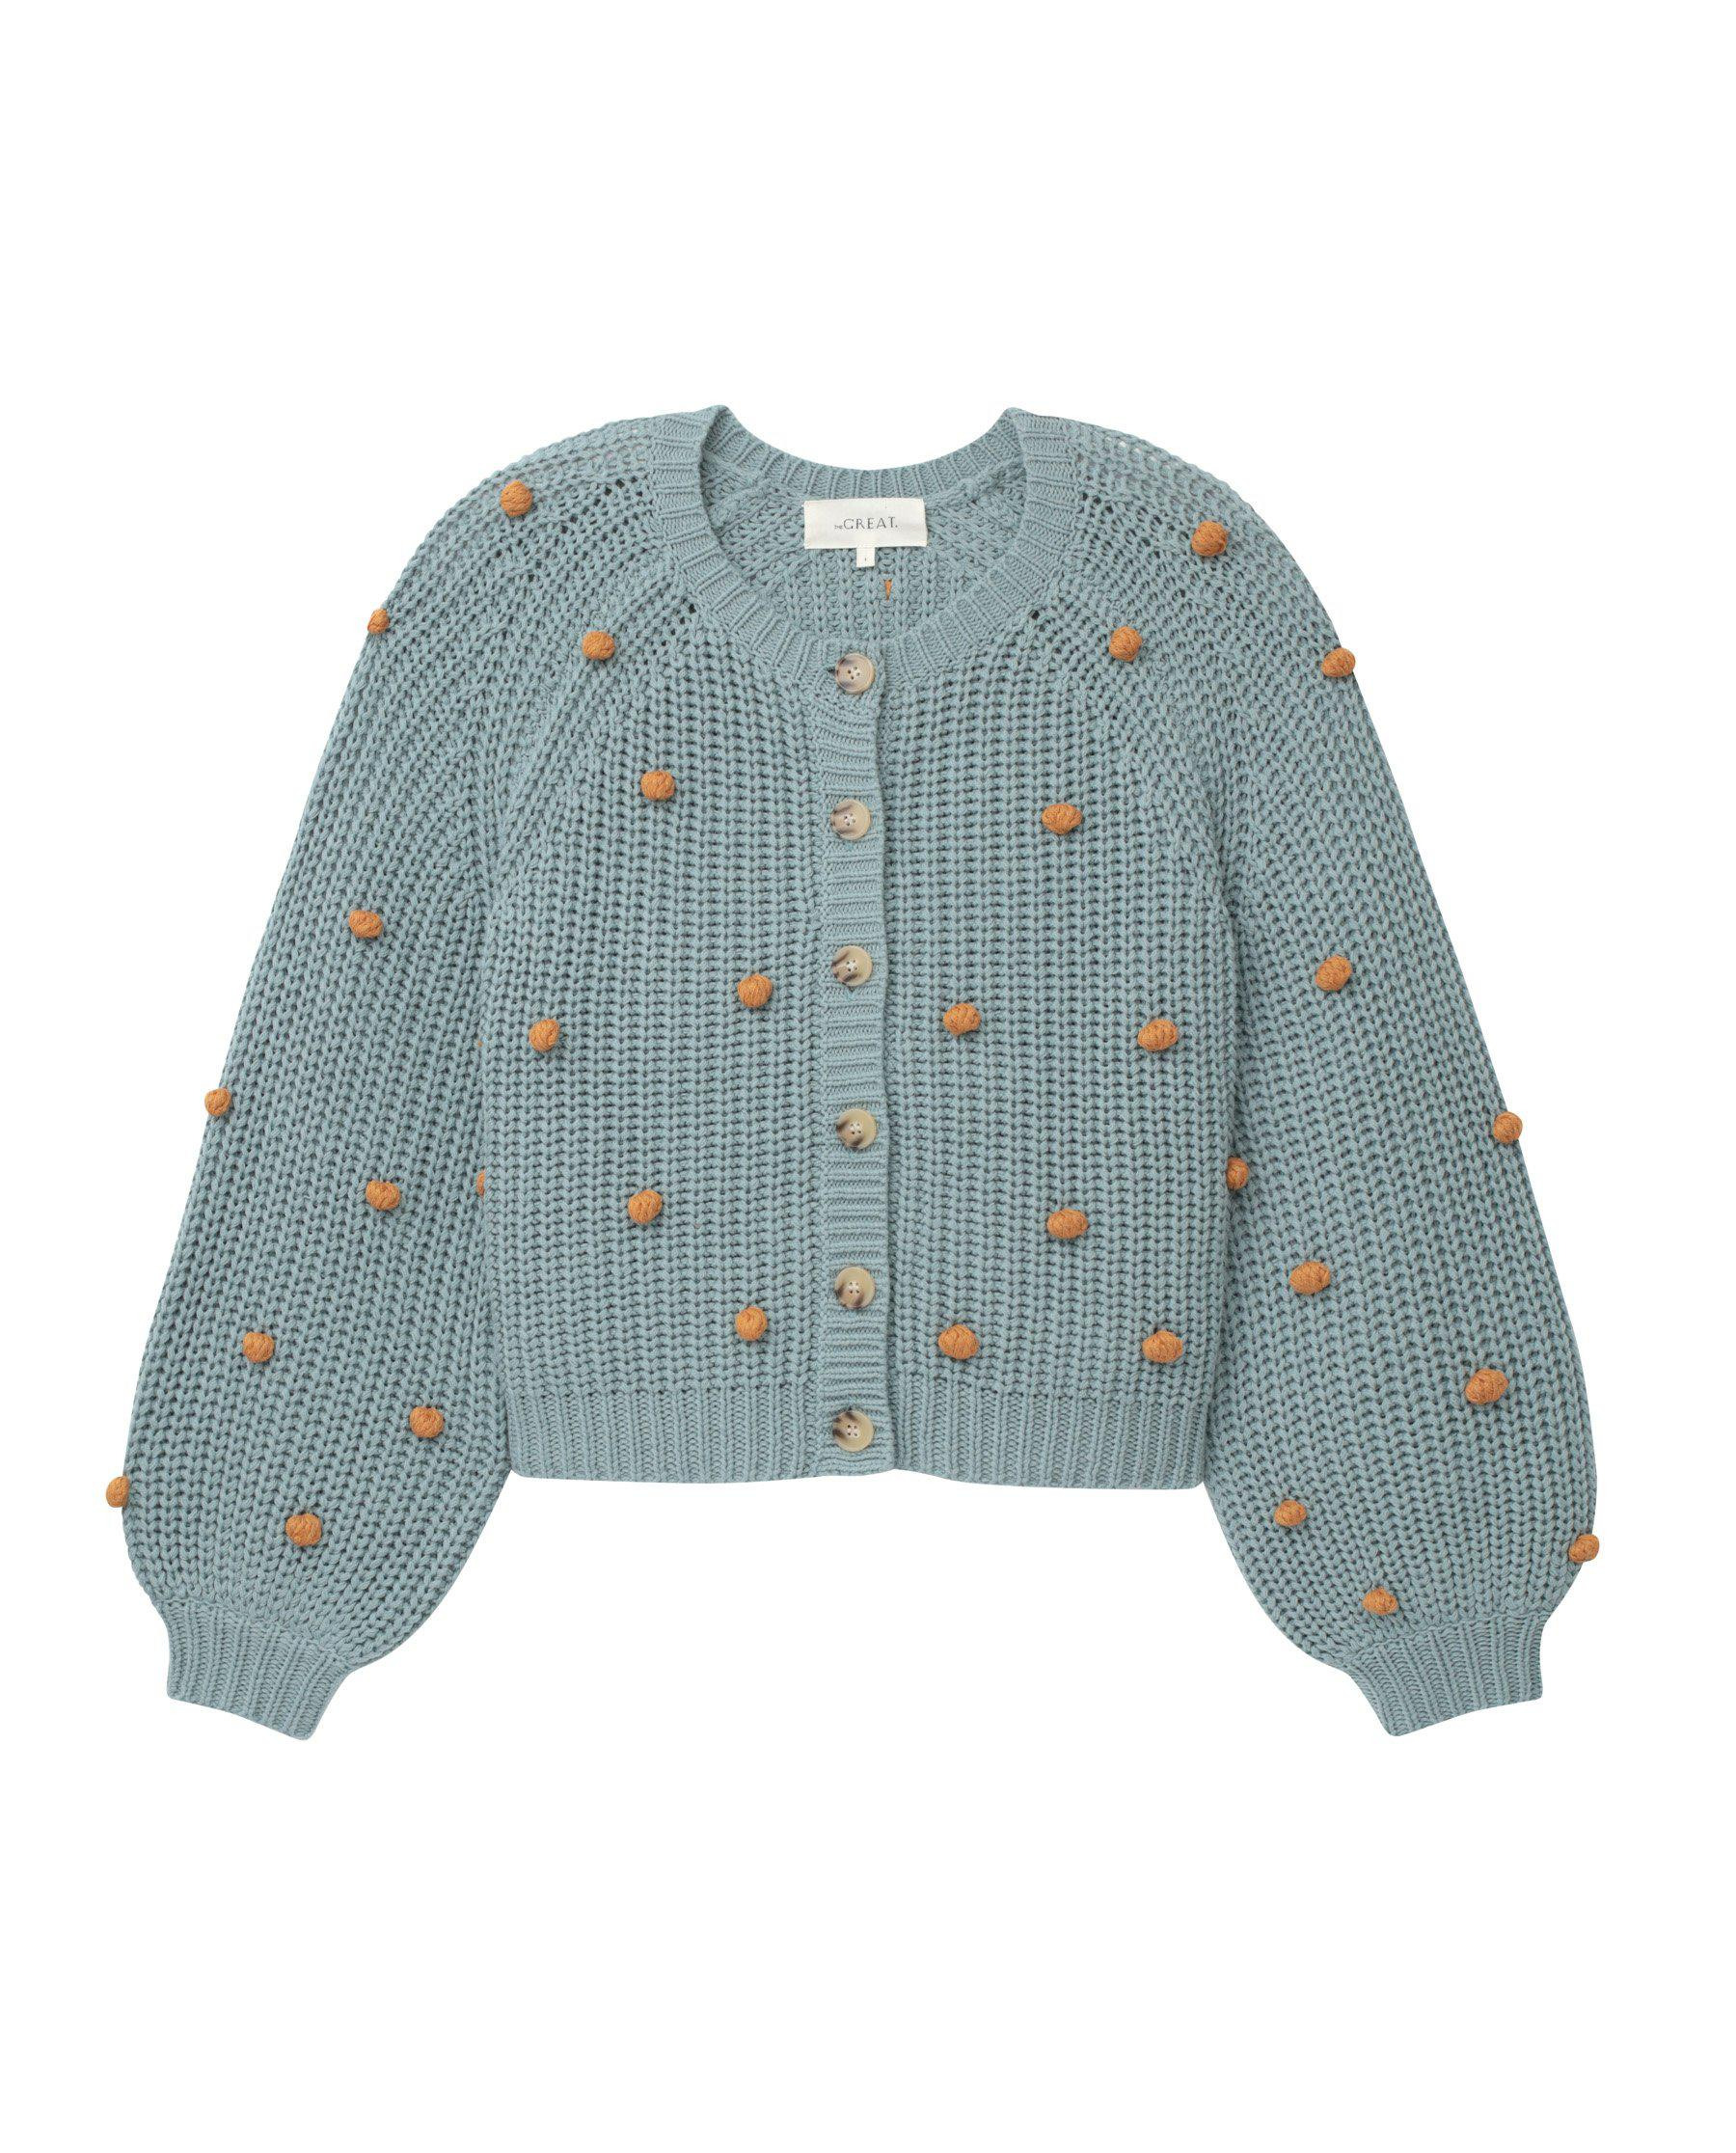 The Bobble Sophomore Cardigan. -- Dusty Blue with Honey 4